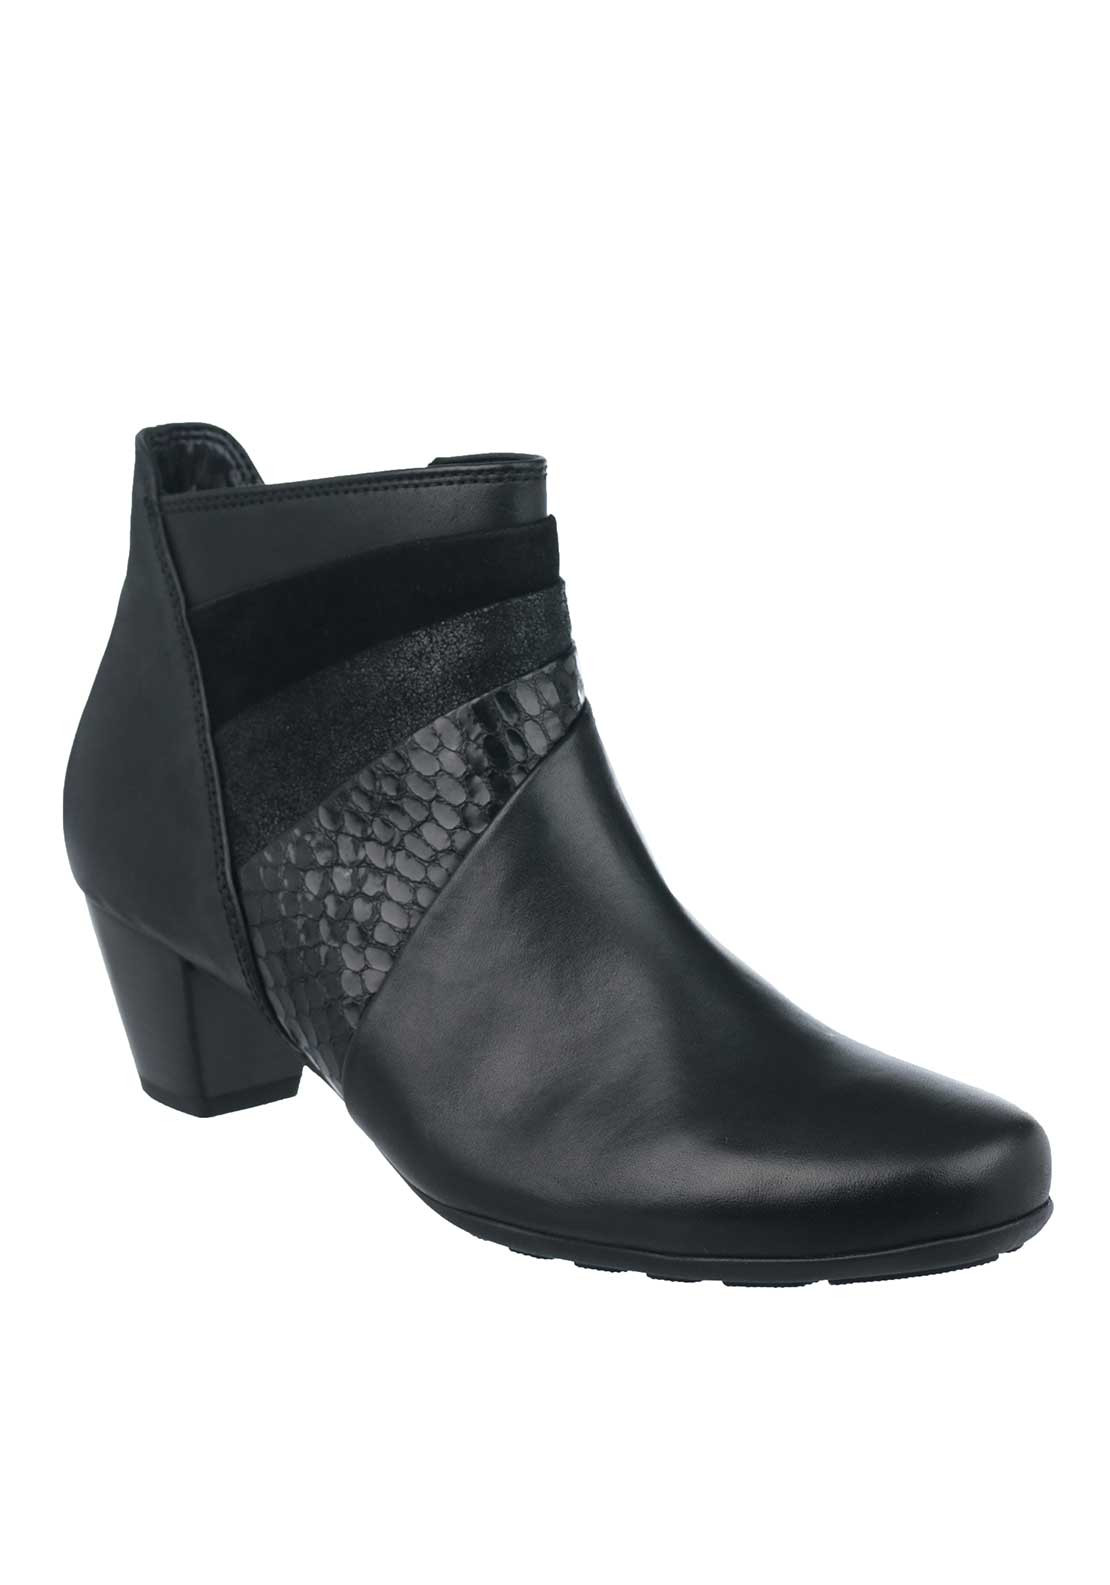 Gabor Leather Multi Panel Heeled Ankle Boots, Black